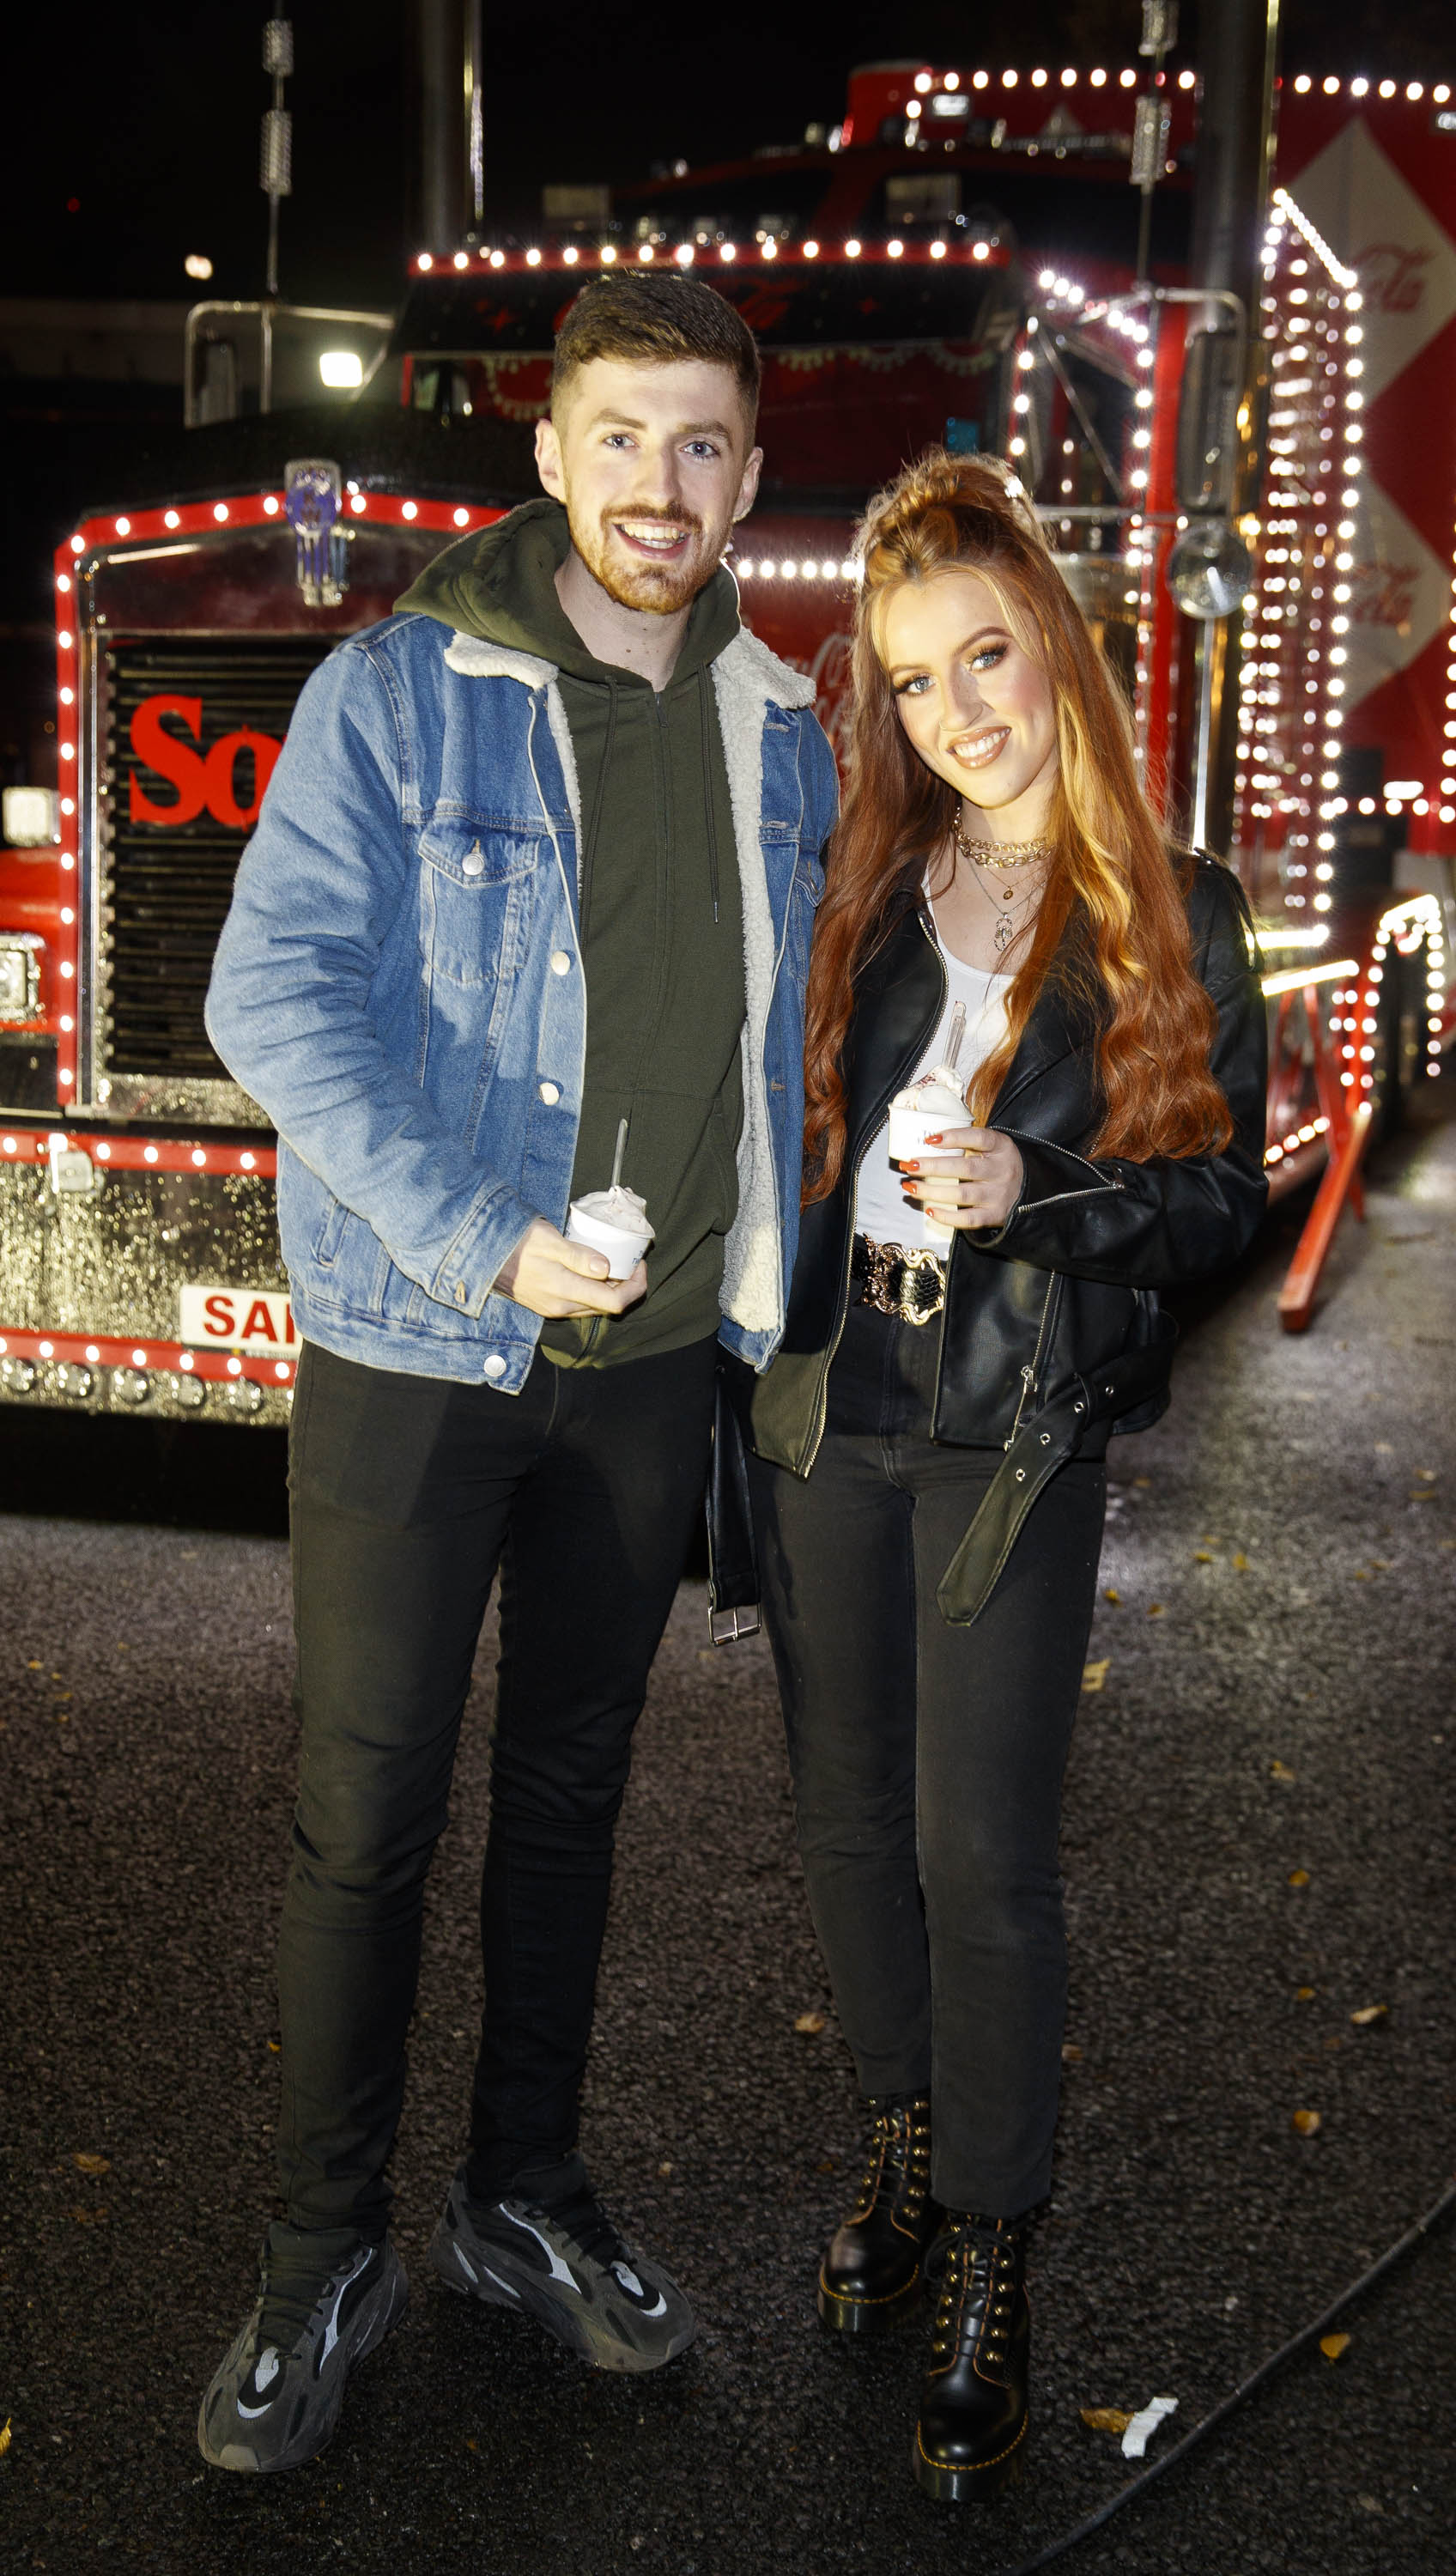 Darren Kananagh and Keilidh Cashell pictured at Coca-Cola's Christmas Truck Tour launch which took place Monday 25th November at the RDS, Dublin. Photo: Andres Poveda